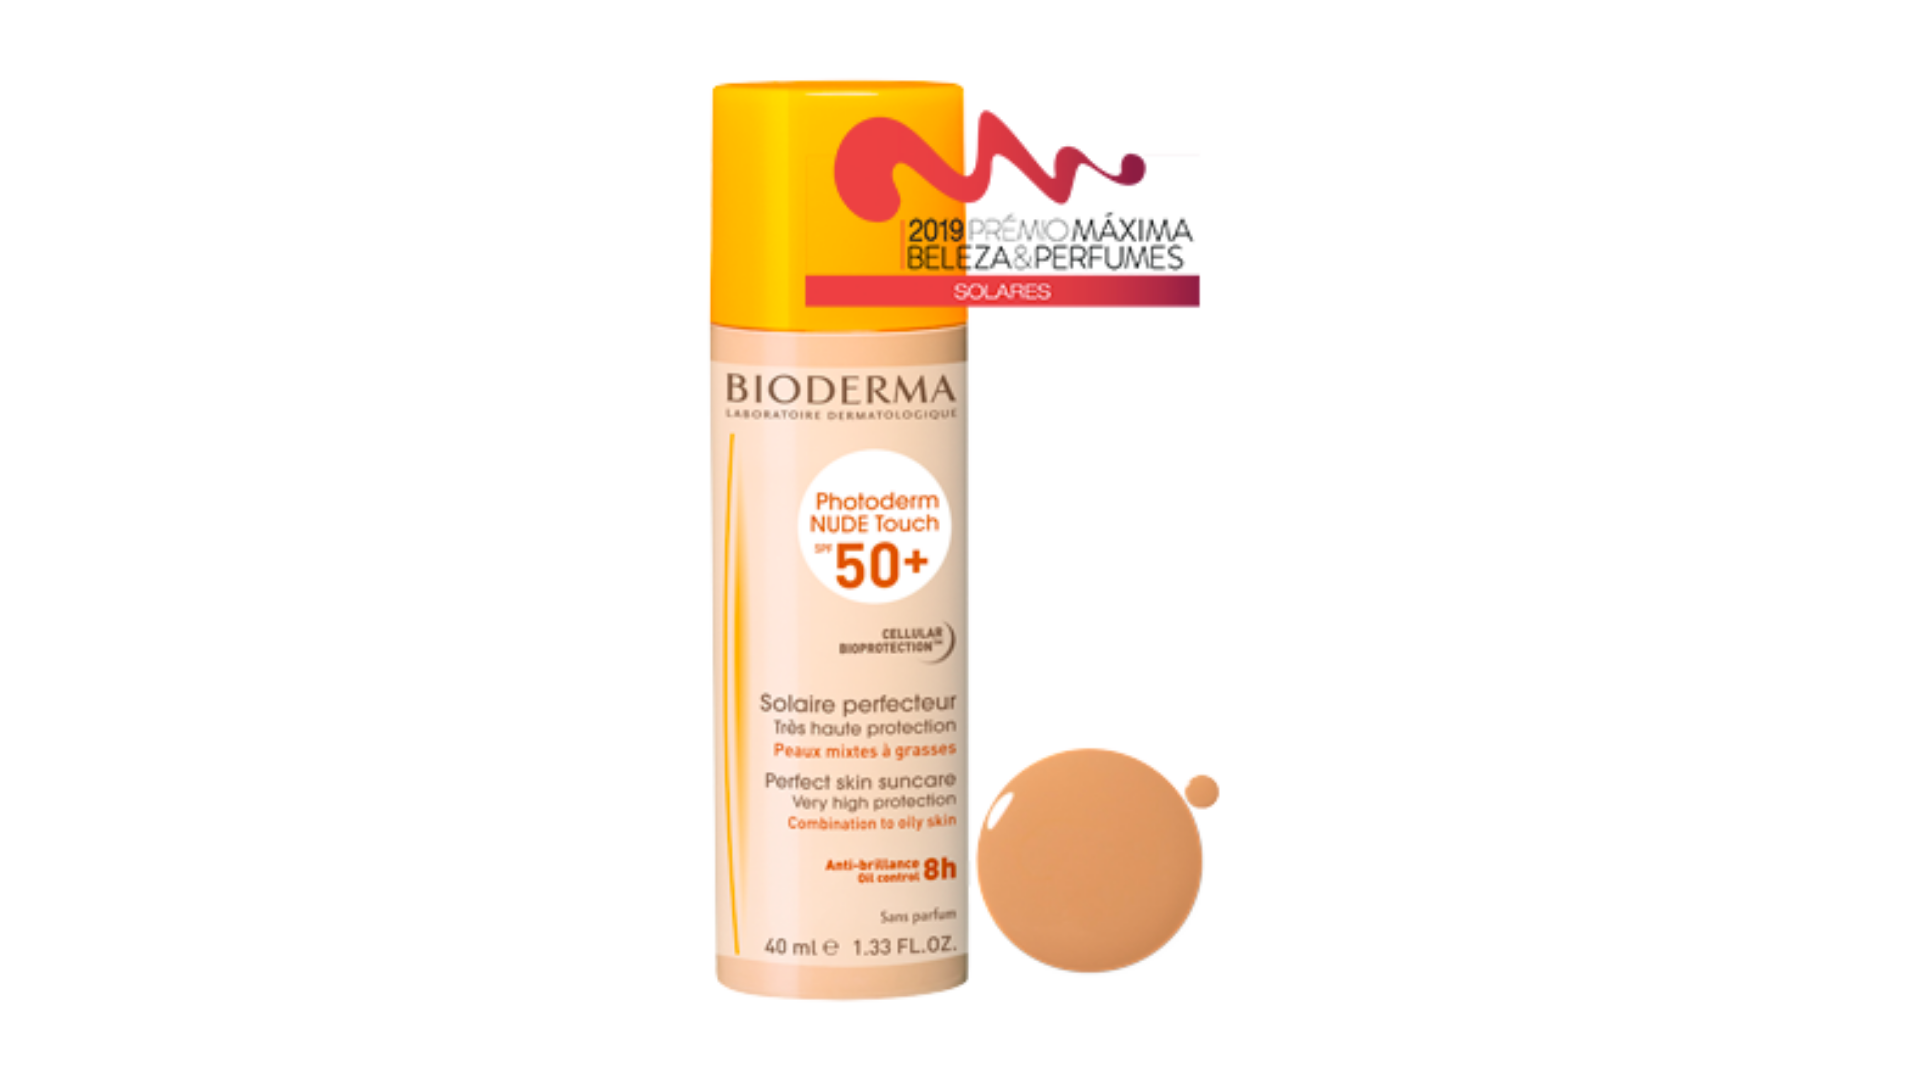 Bioderma | Photoderm NUDE Touch SPF 50+ 40ml